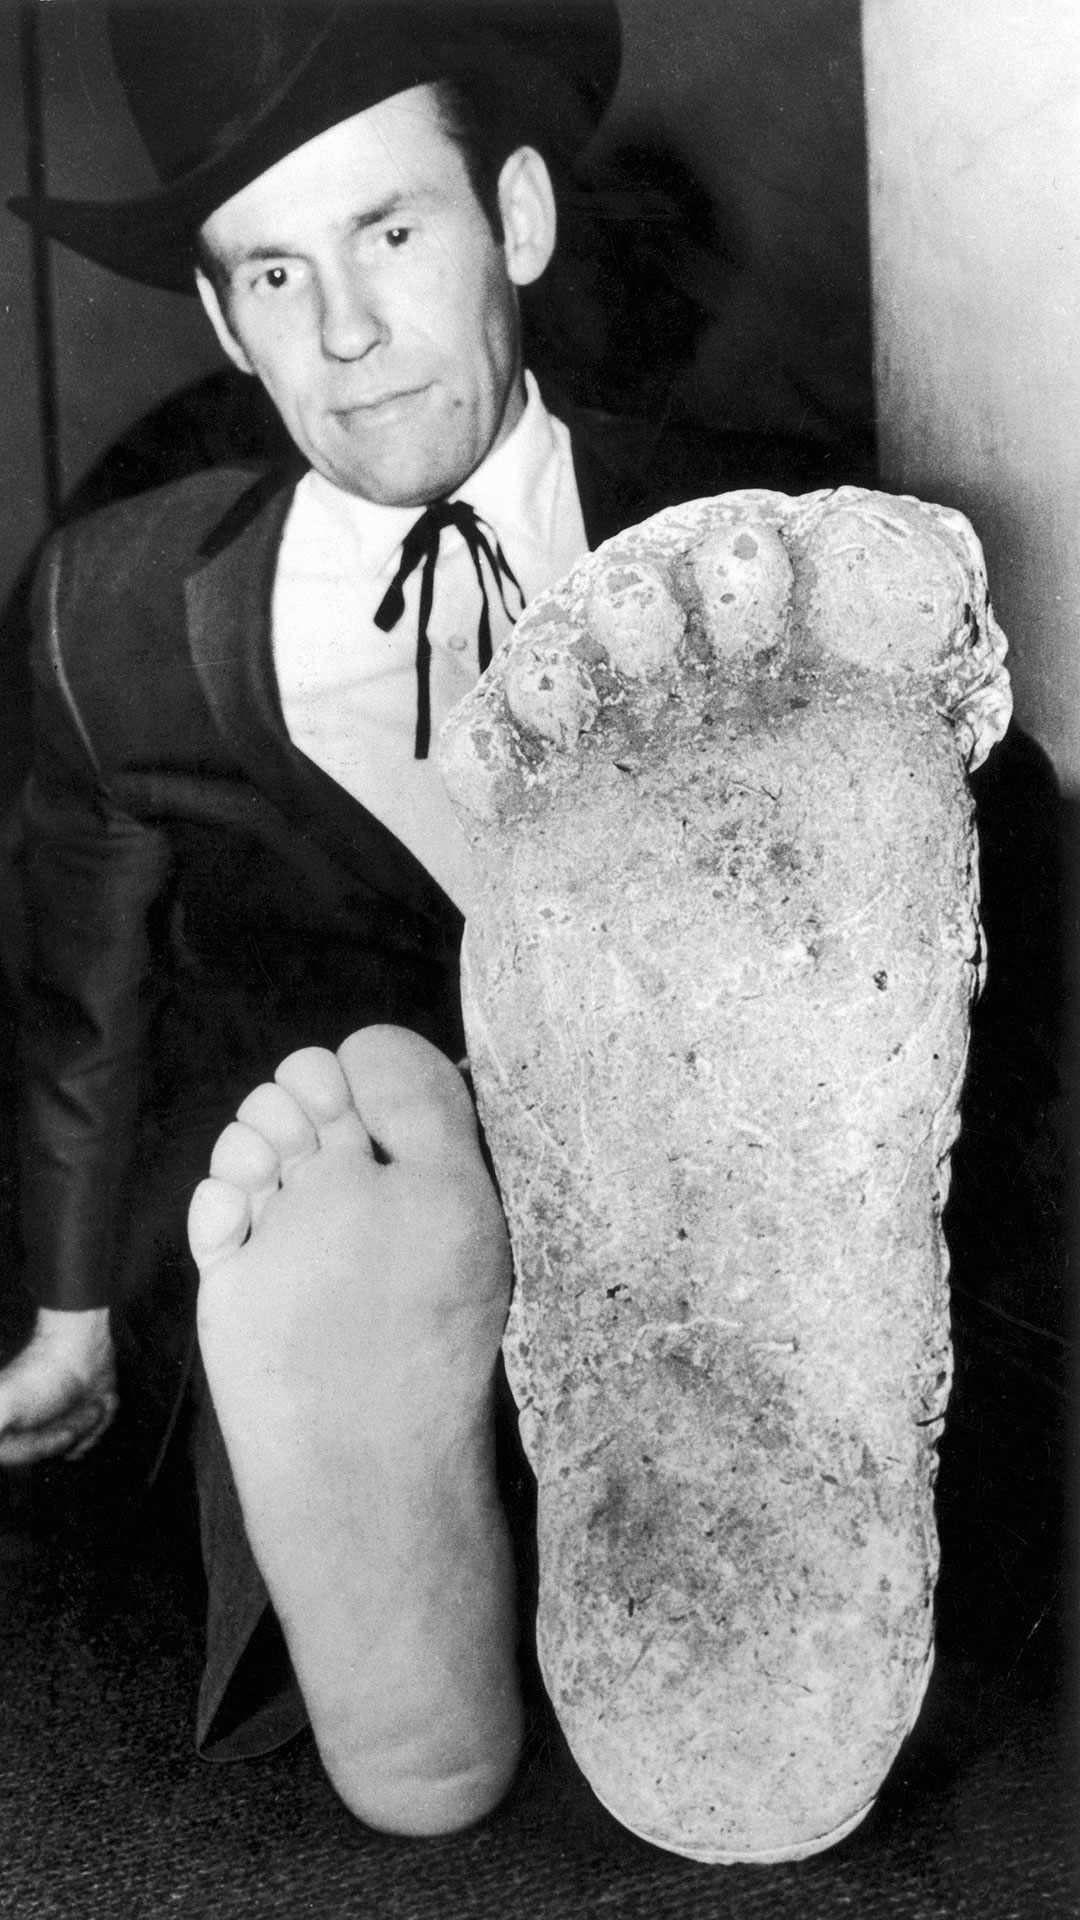 Roger Patterson comparing his foot with a plaster cast of a footprint by the purported 'Bigfoot' or 'Sasquatch'.